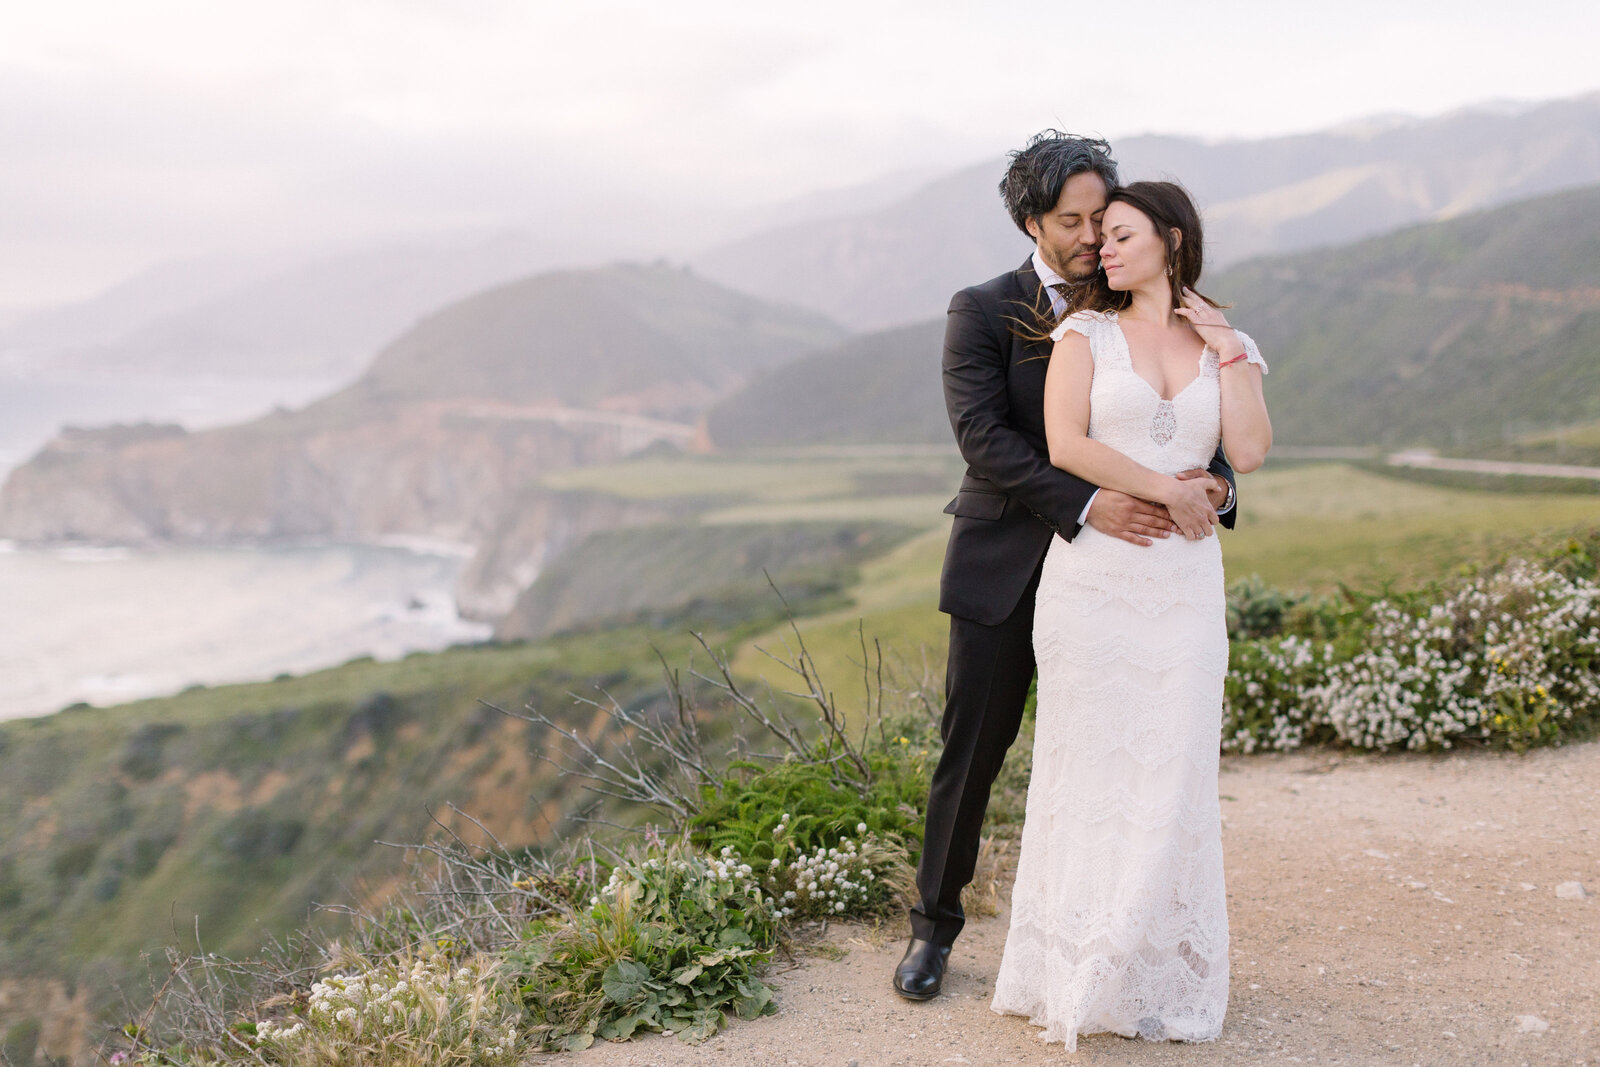 larissa-cleveland-elope-eleopement-intimate-wedding-photographer-san-francisco-napa-carmel-061